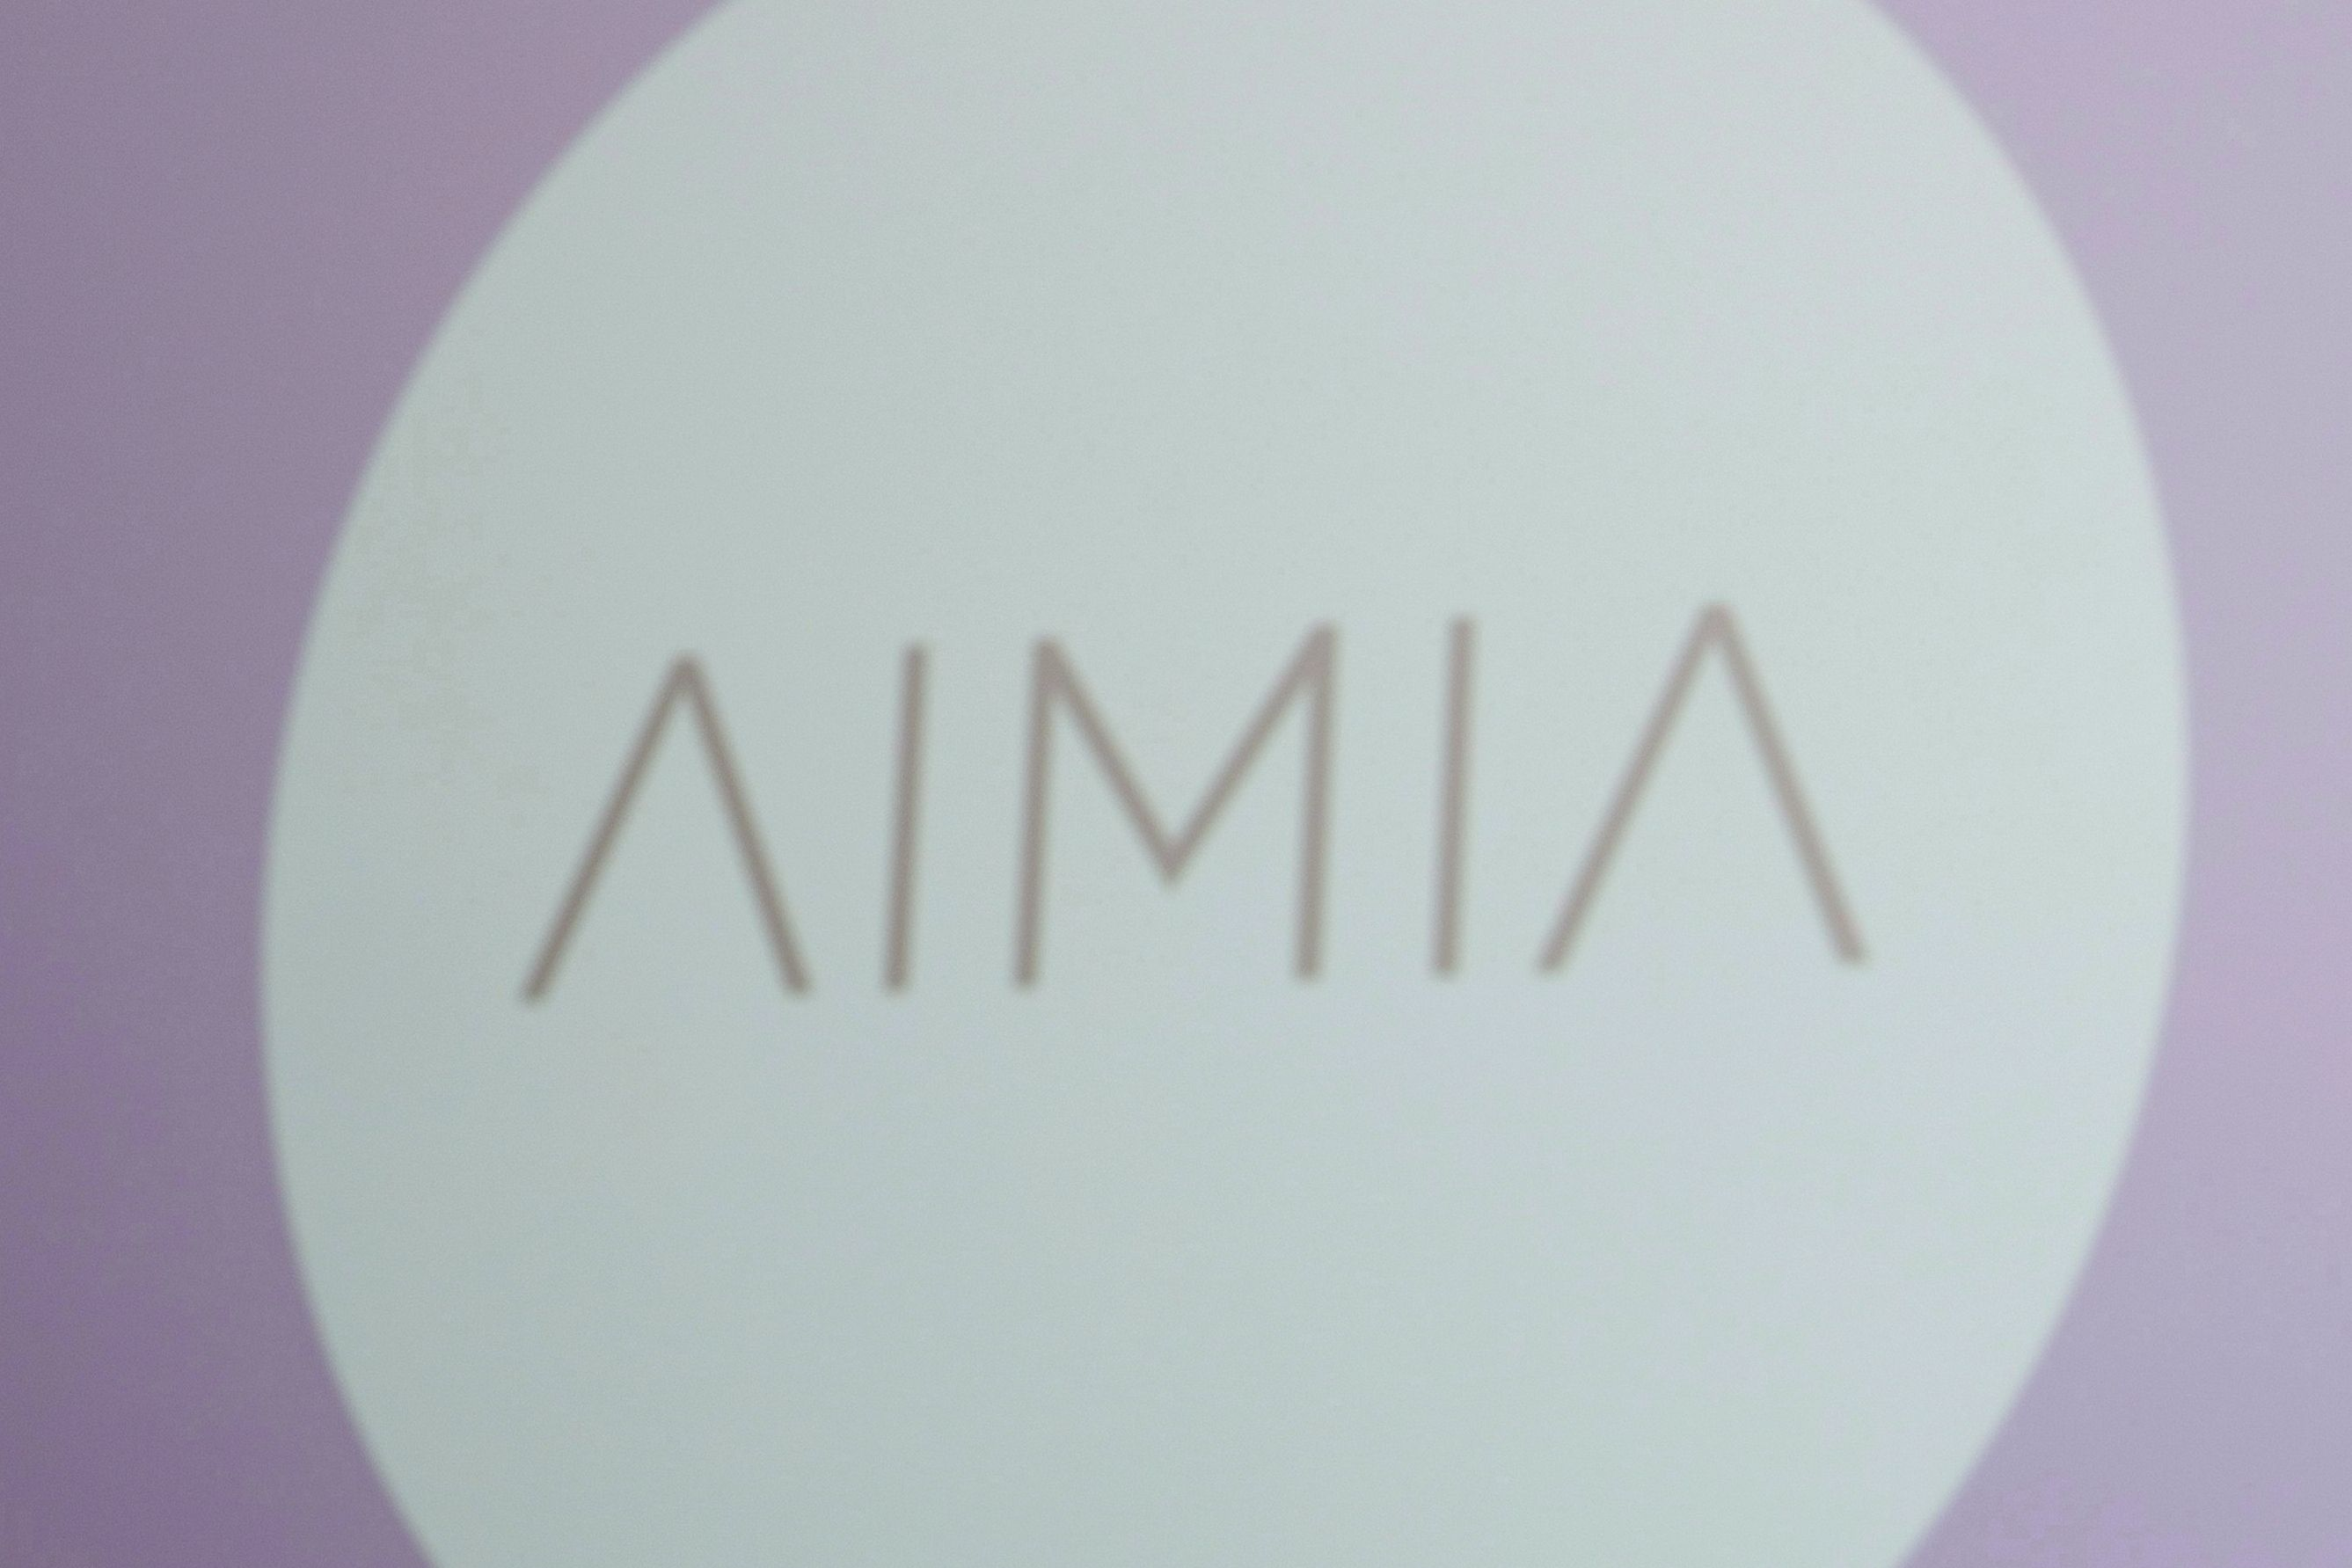 Aimia names two directors with investment banking background to board